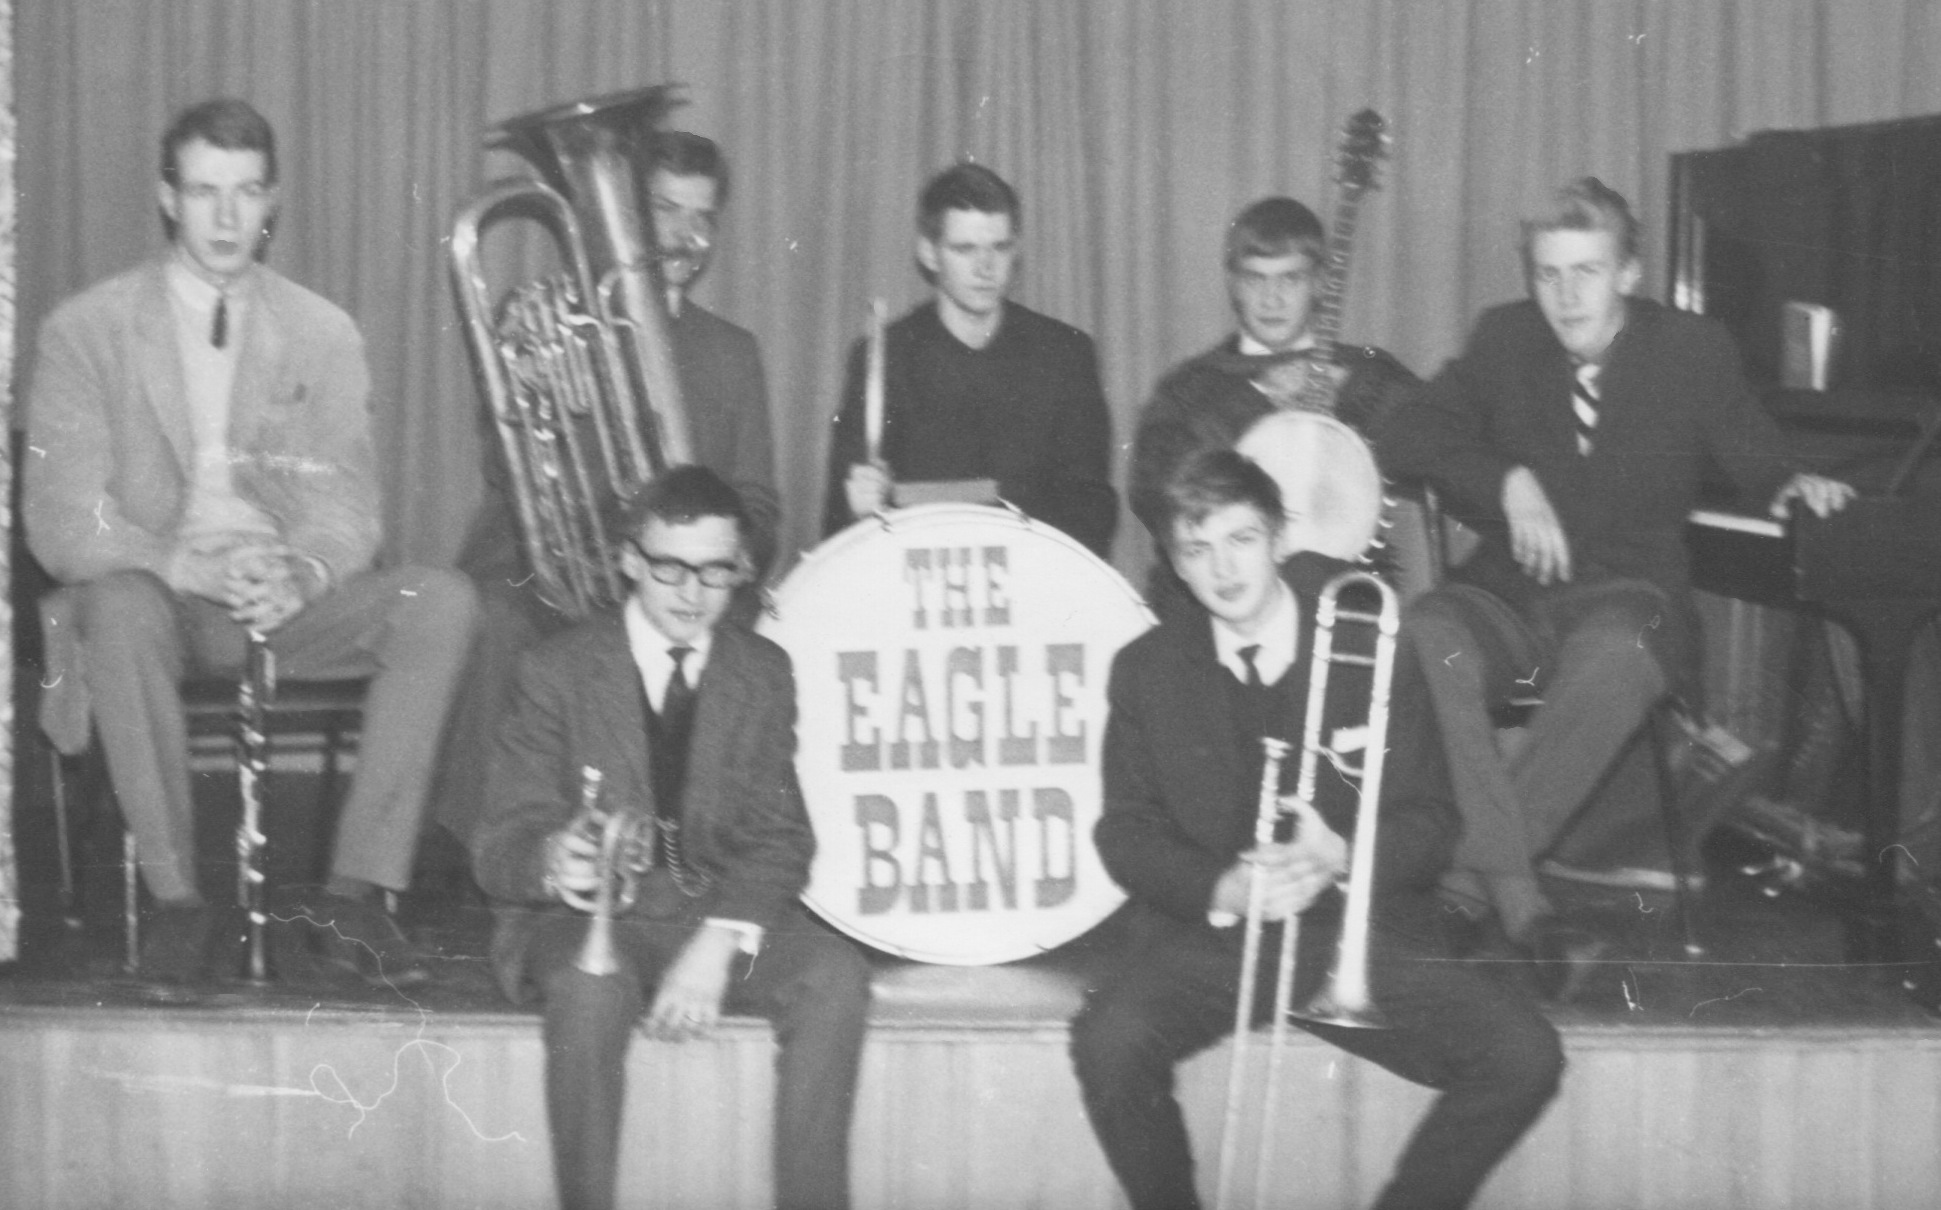 1961 The Eagle Band